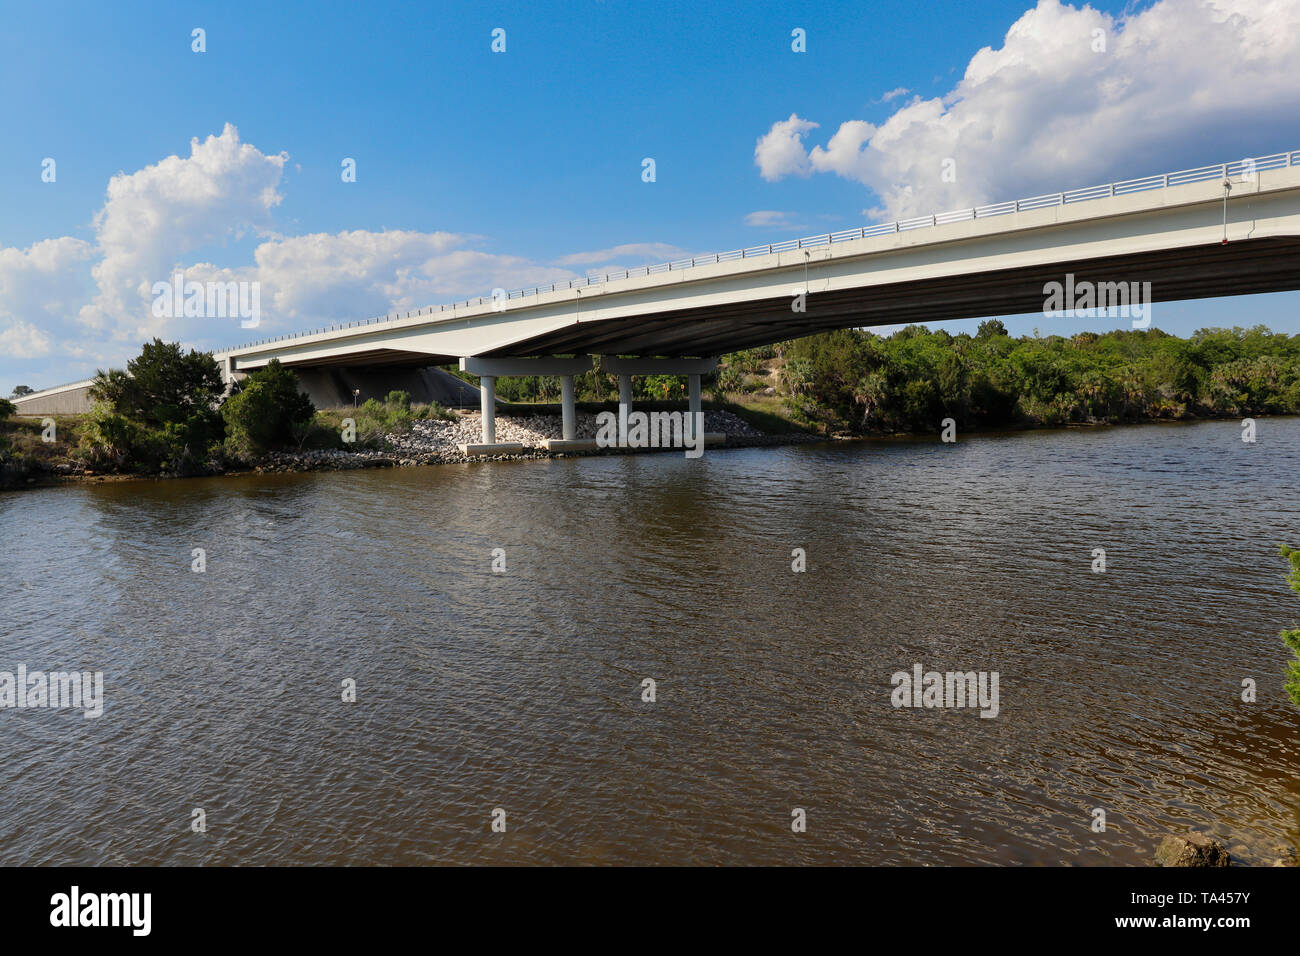 US Hwy 98 over the Cross Florida Barge Canal - Stock Image